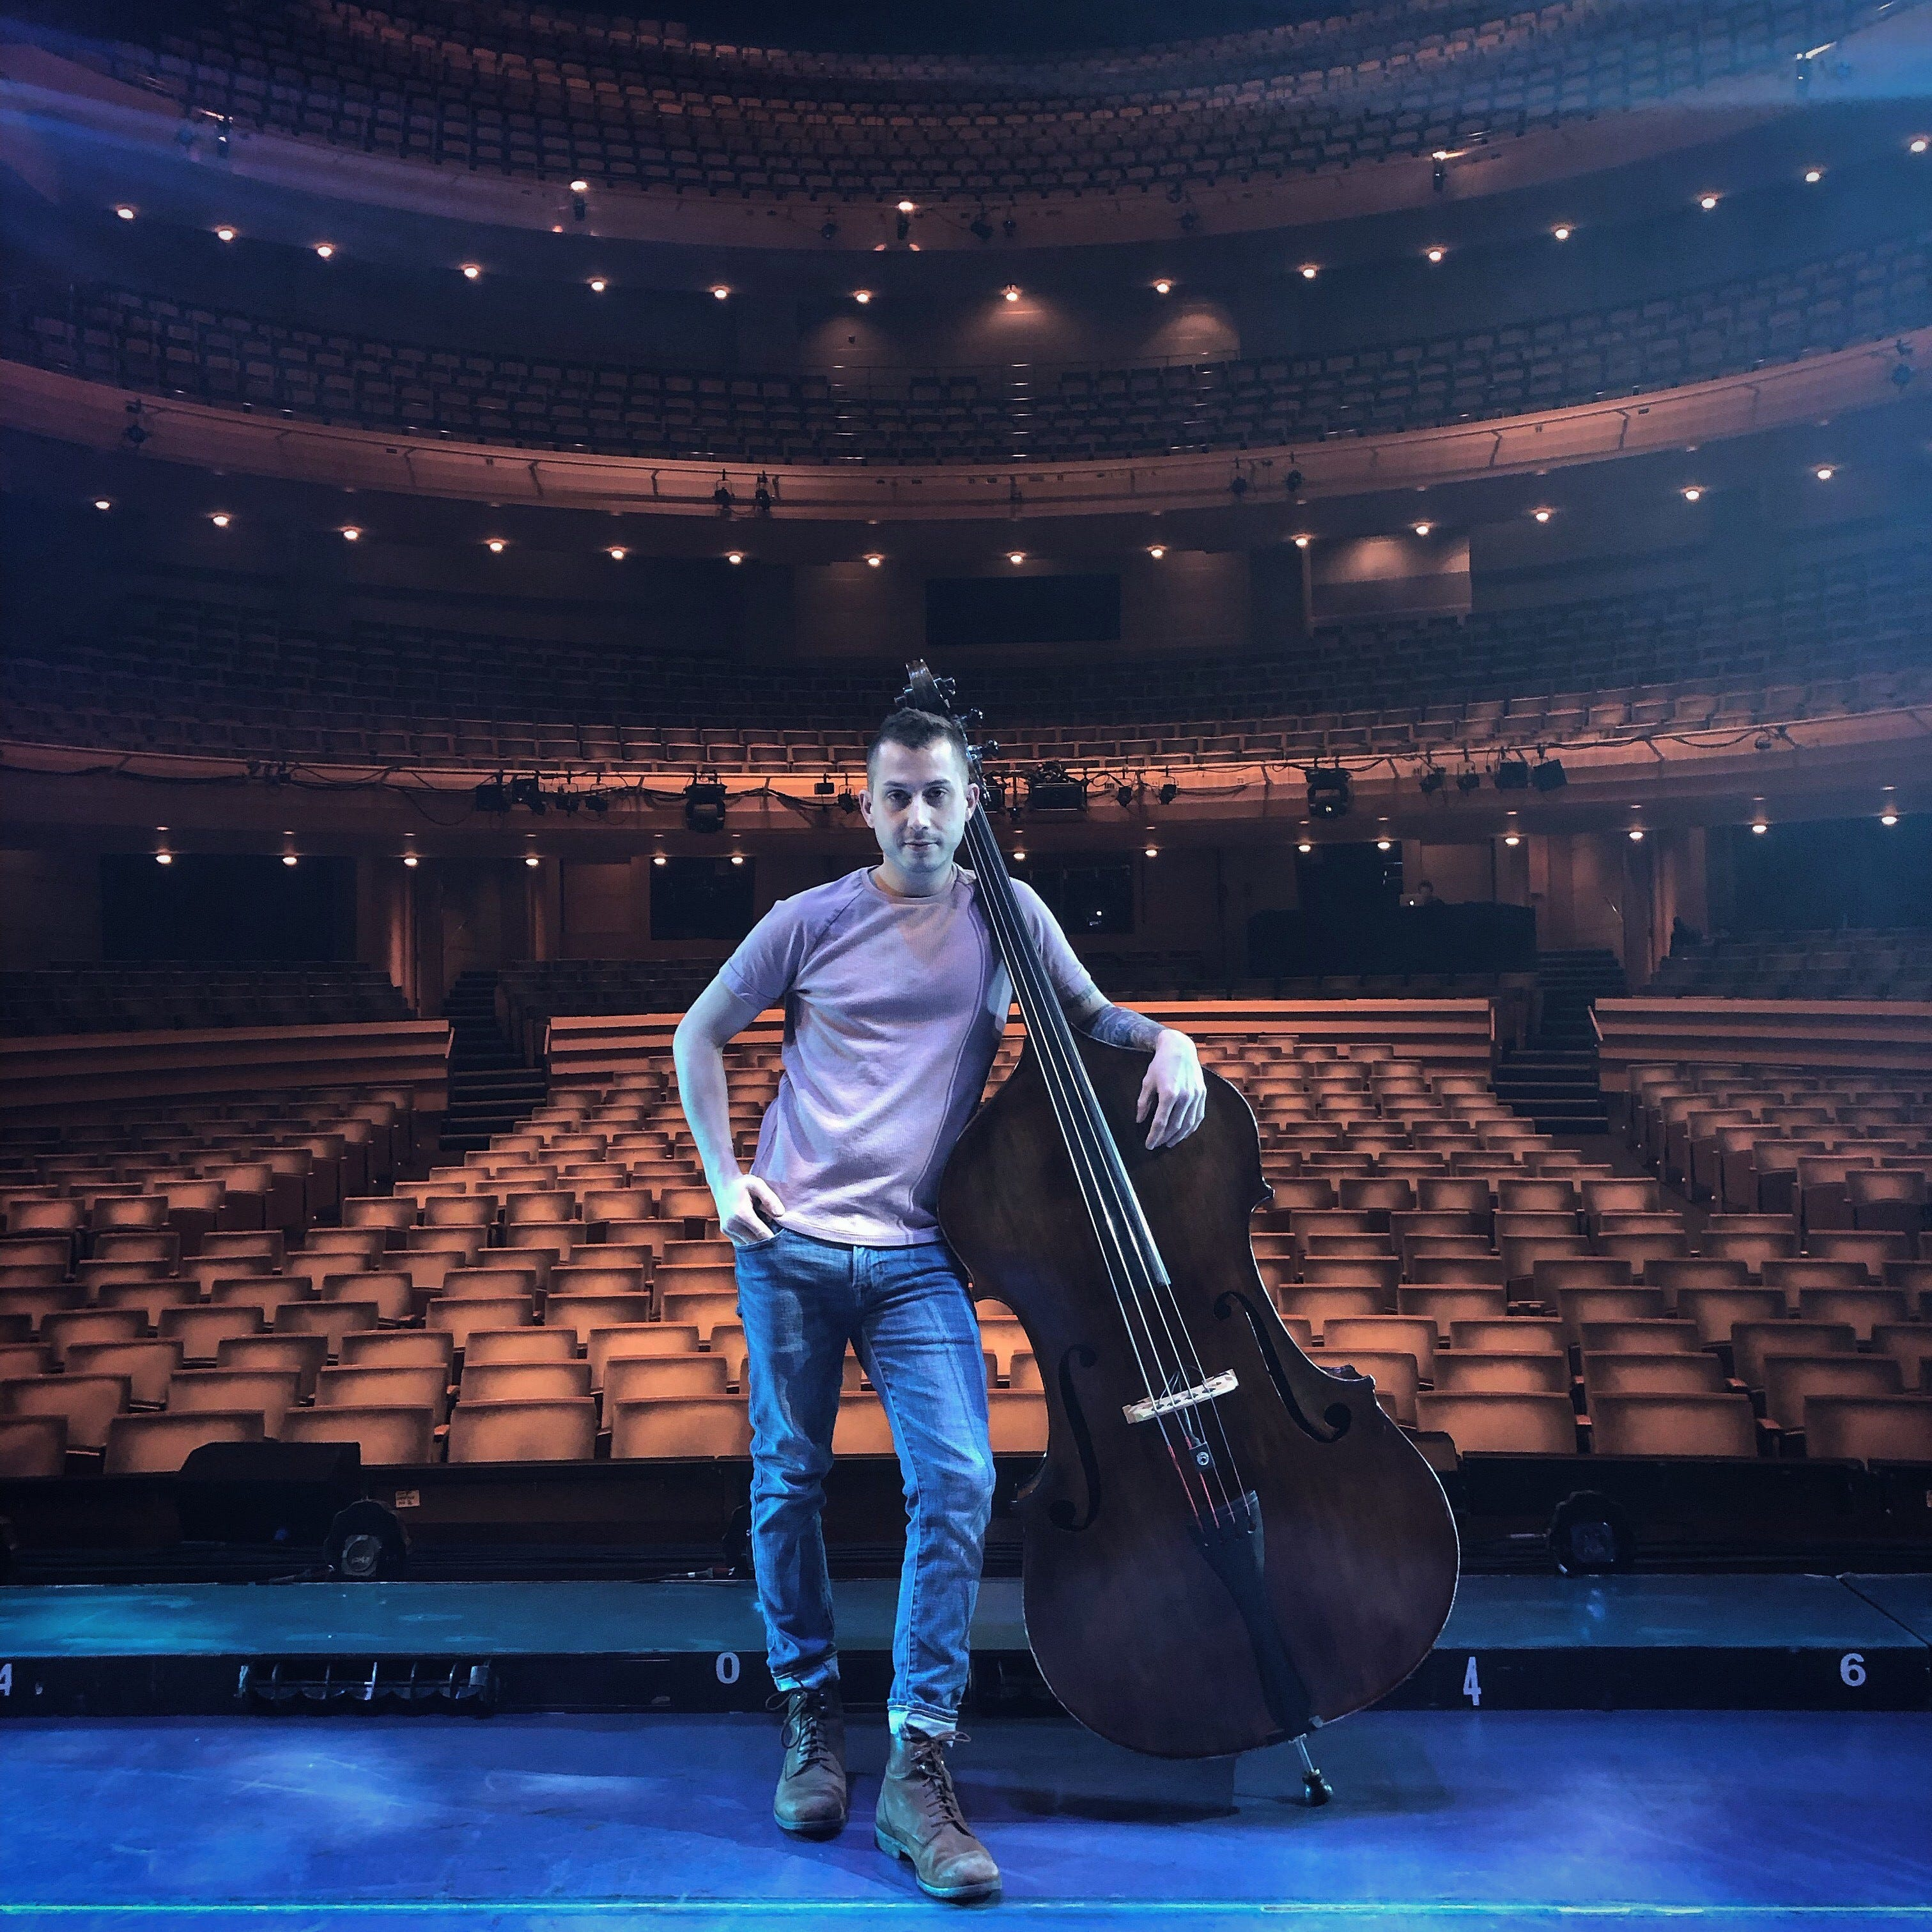 He learned to play bass in Sheboygan. Now he's touring the world with Broadway shows.